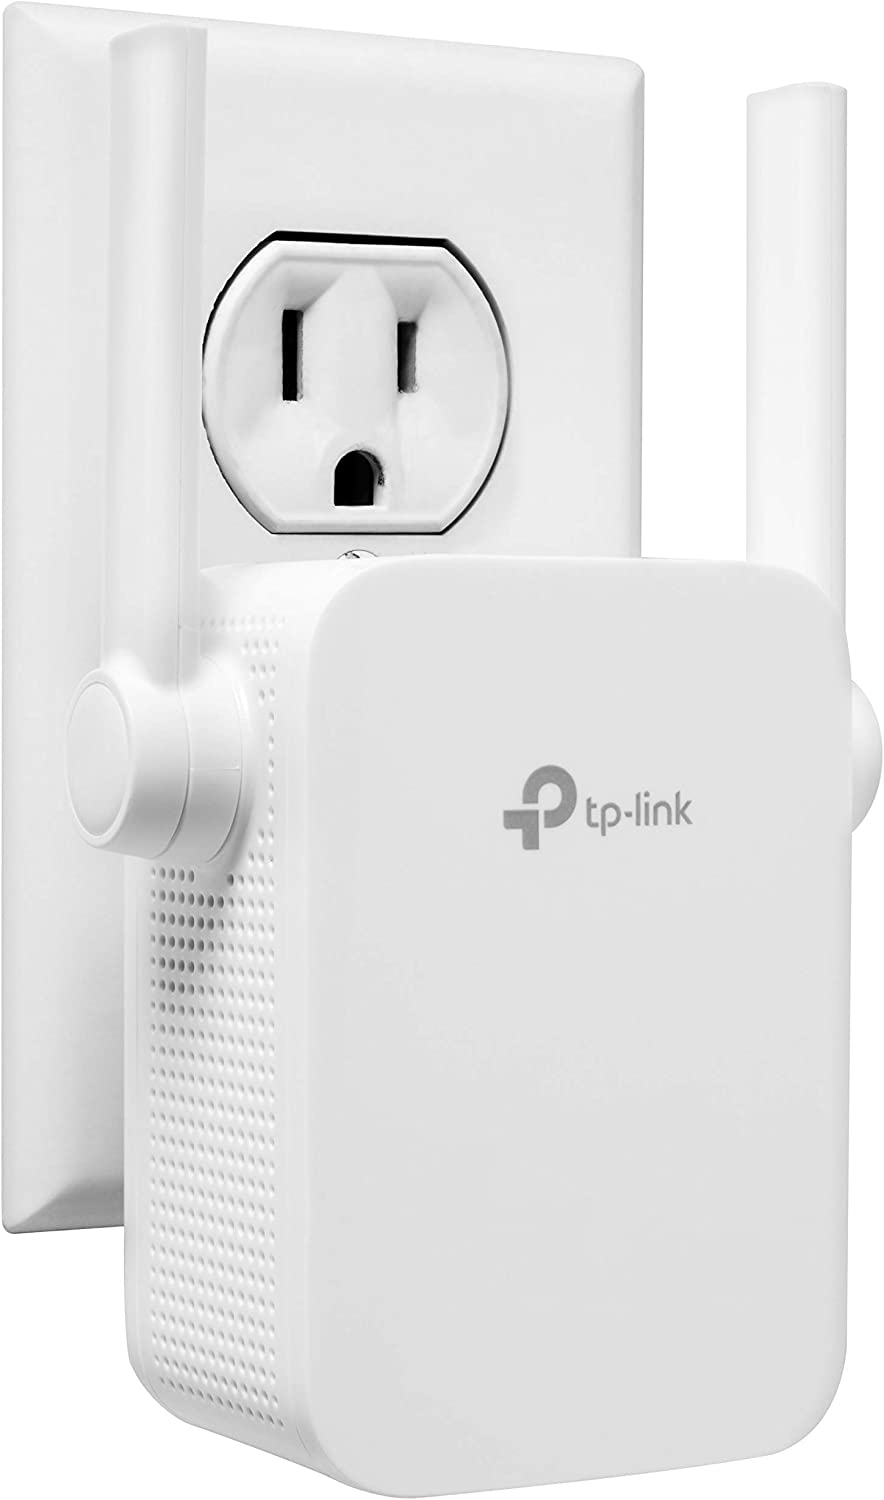 TP-Link N300 WiFi Extender(TL-WA855RE)-Covers Up to 800 Sq.ft, WiFi Range Extender supports up to 300Mbps speed, Wireless Signal Booster and Access Point for Home, Single Band 2.4Ghz only: Computers & Accessories